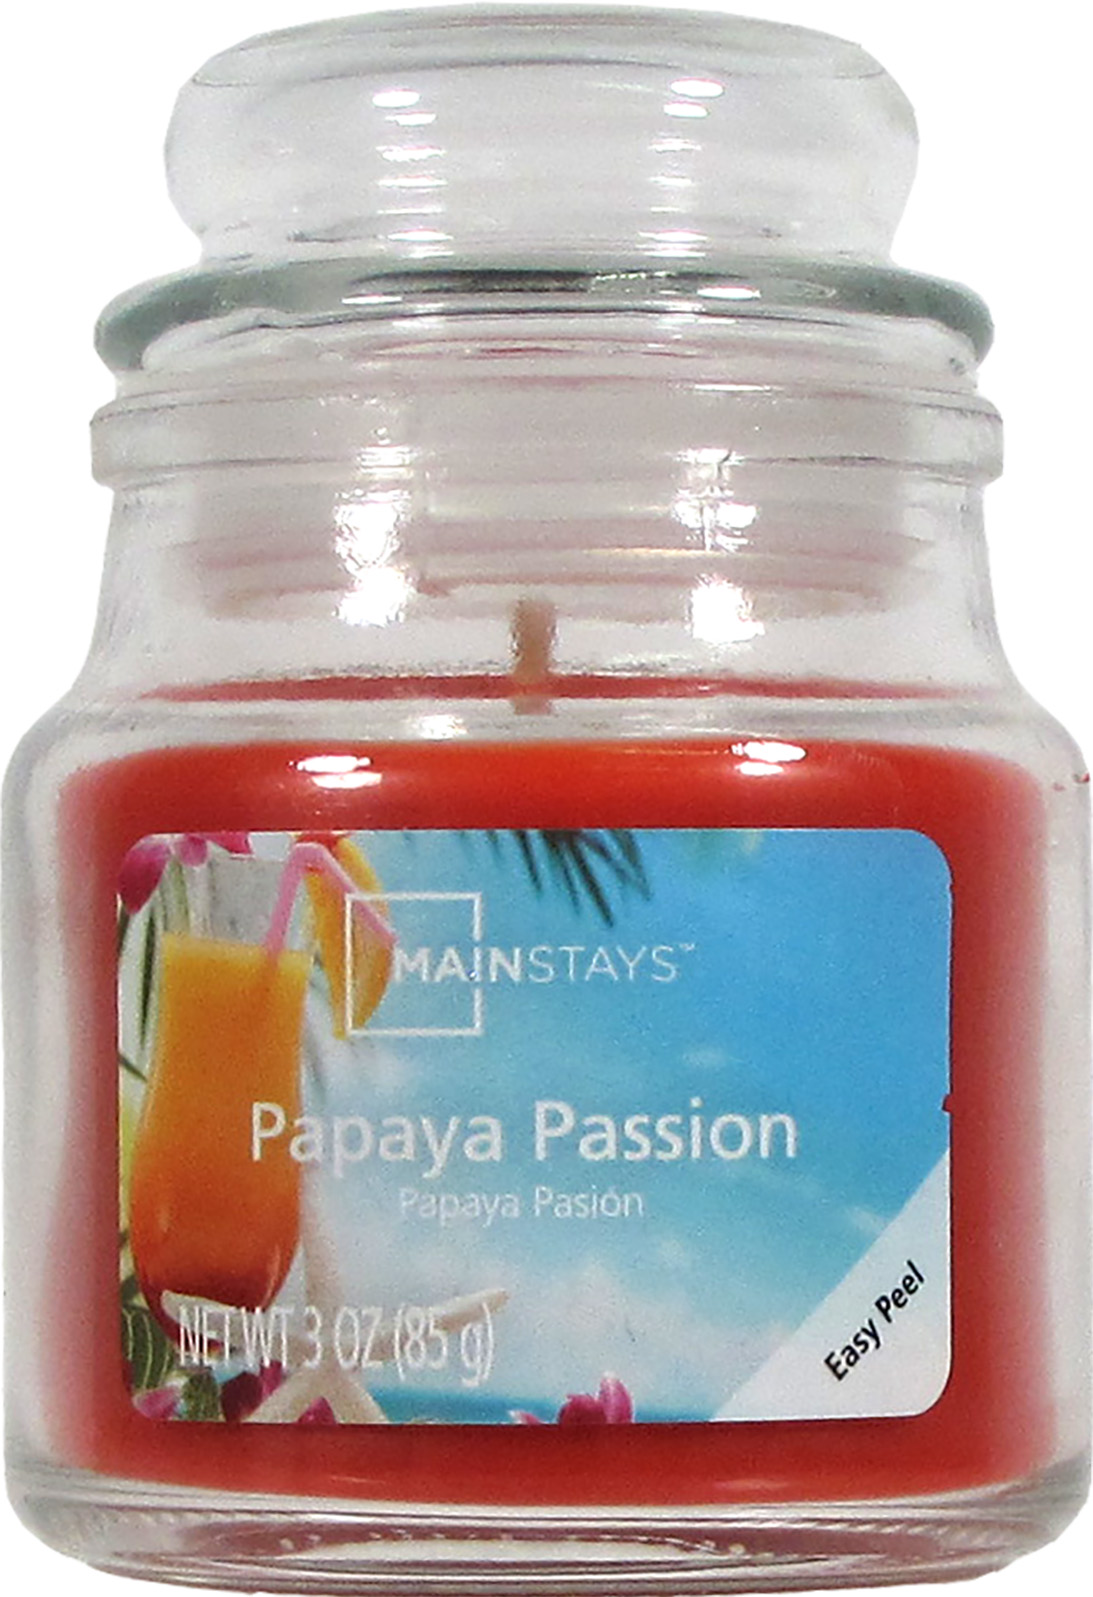 Mainstays 3 Ounce Papaya Passion Jar Candle